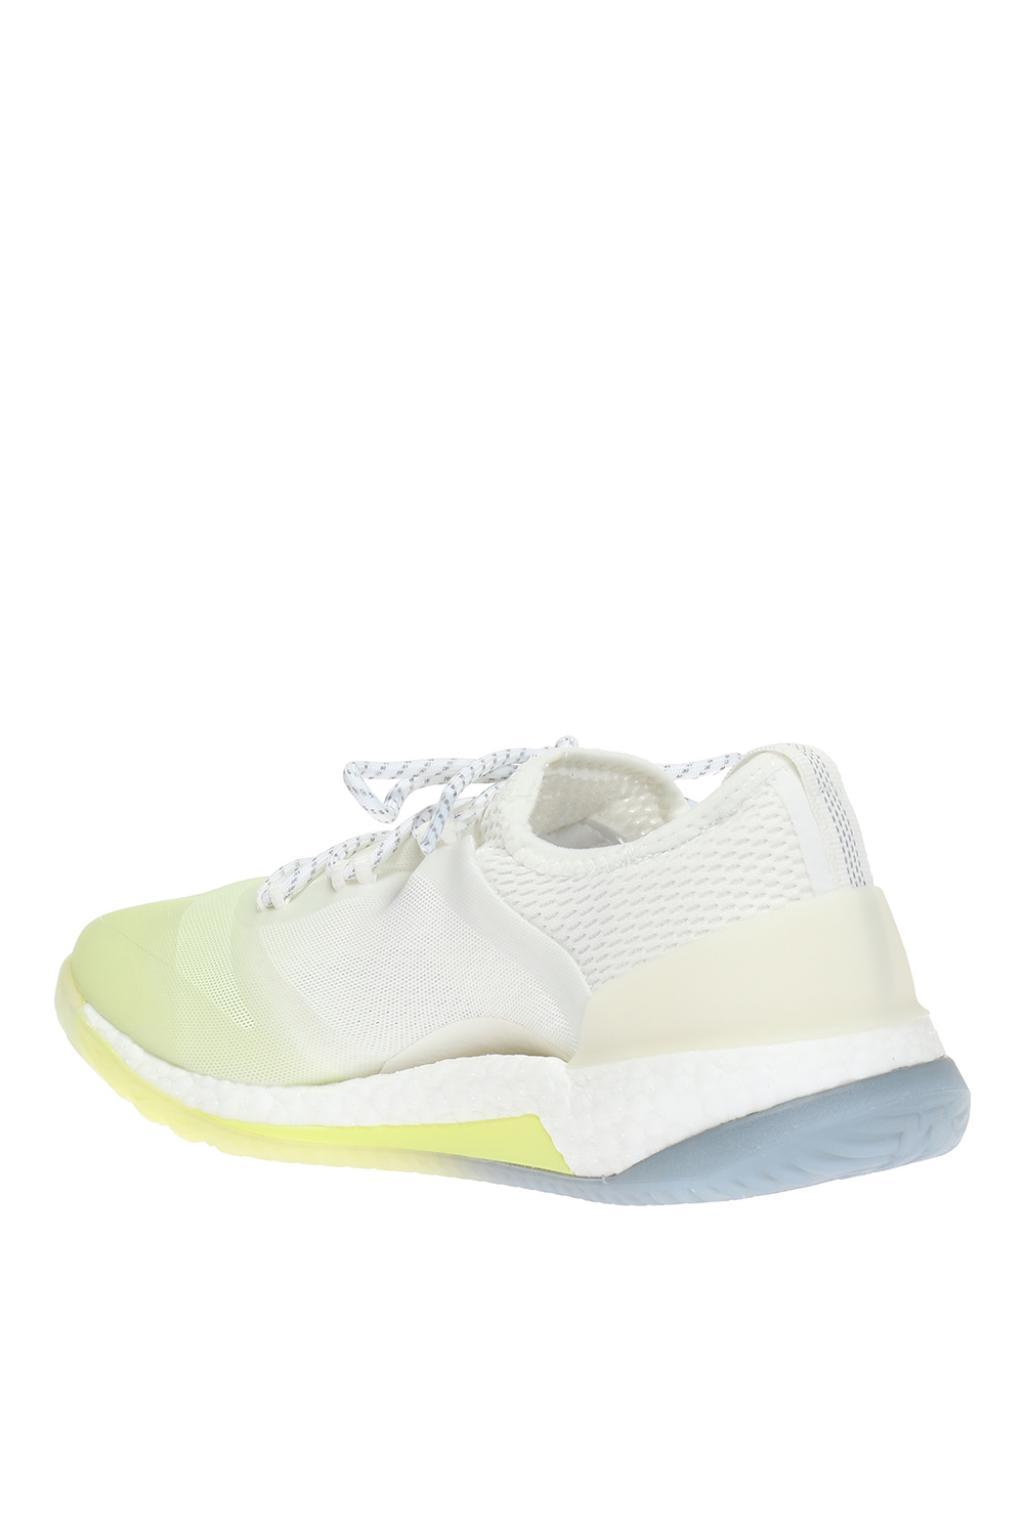 adidas By Stella McCartney Rubber Pureboost X Tr 3.0 Sneakers in White